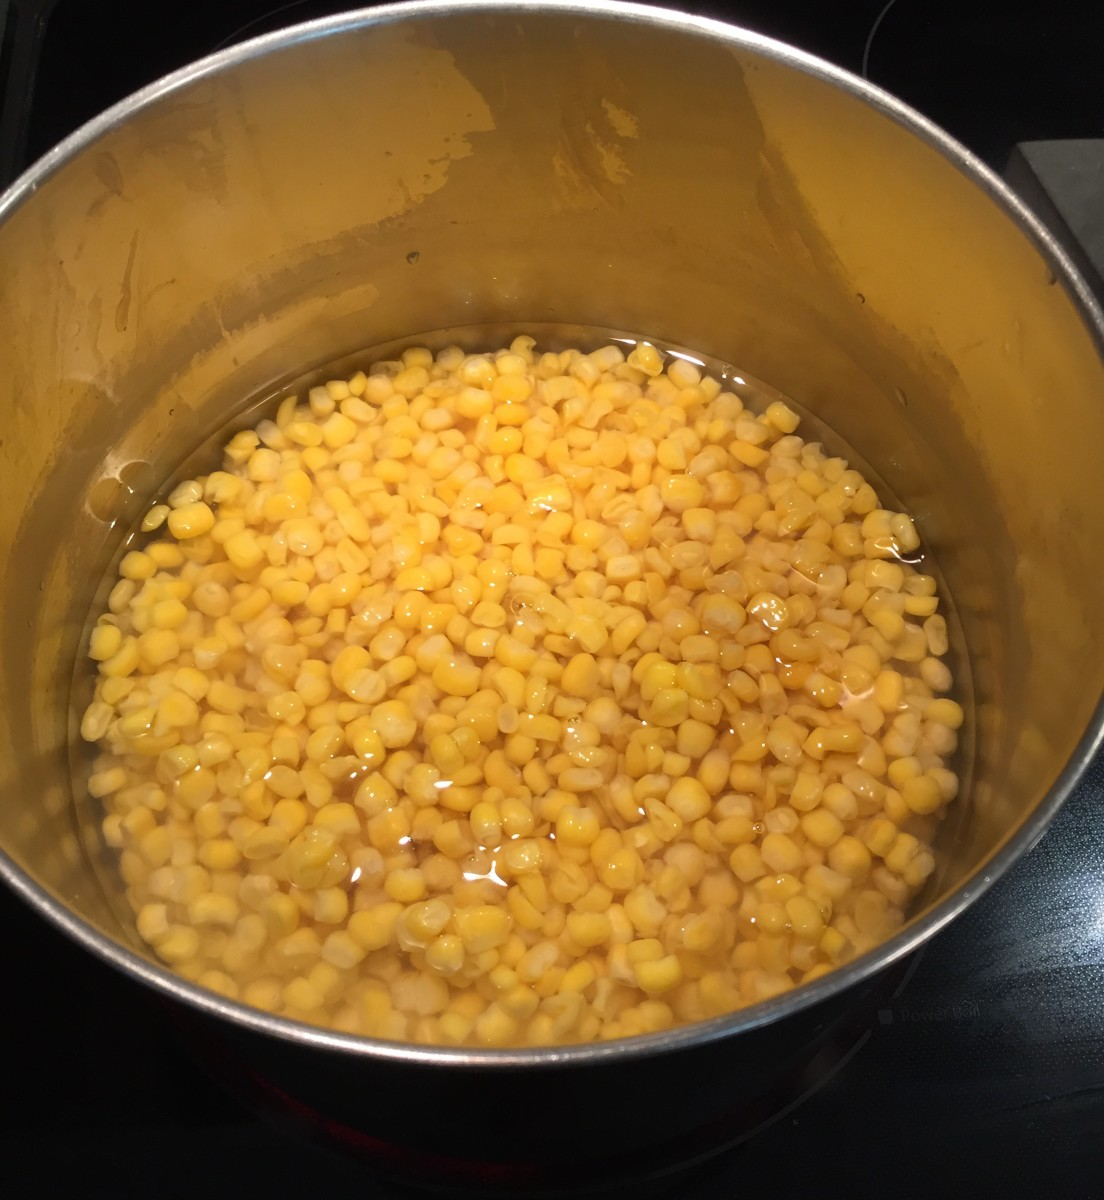 Just cover the corn with water and bring to a boil